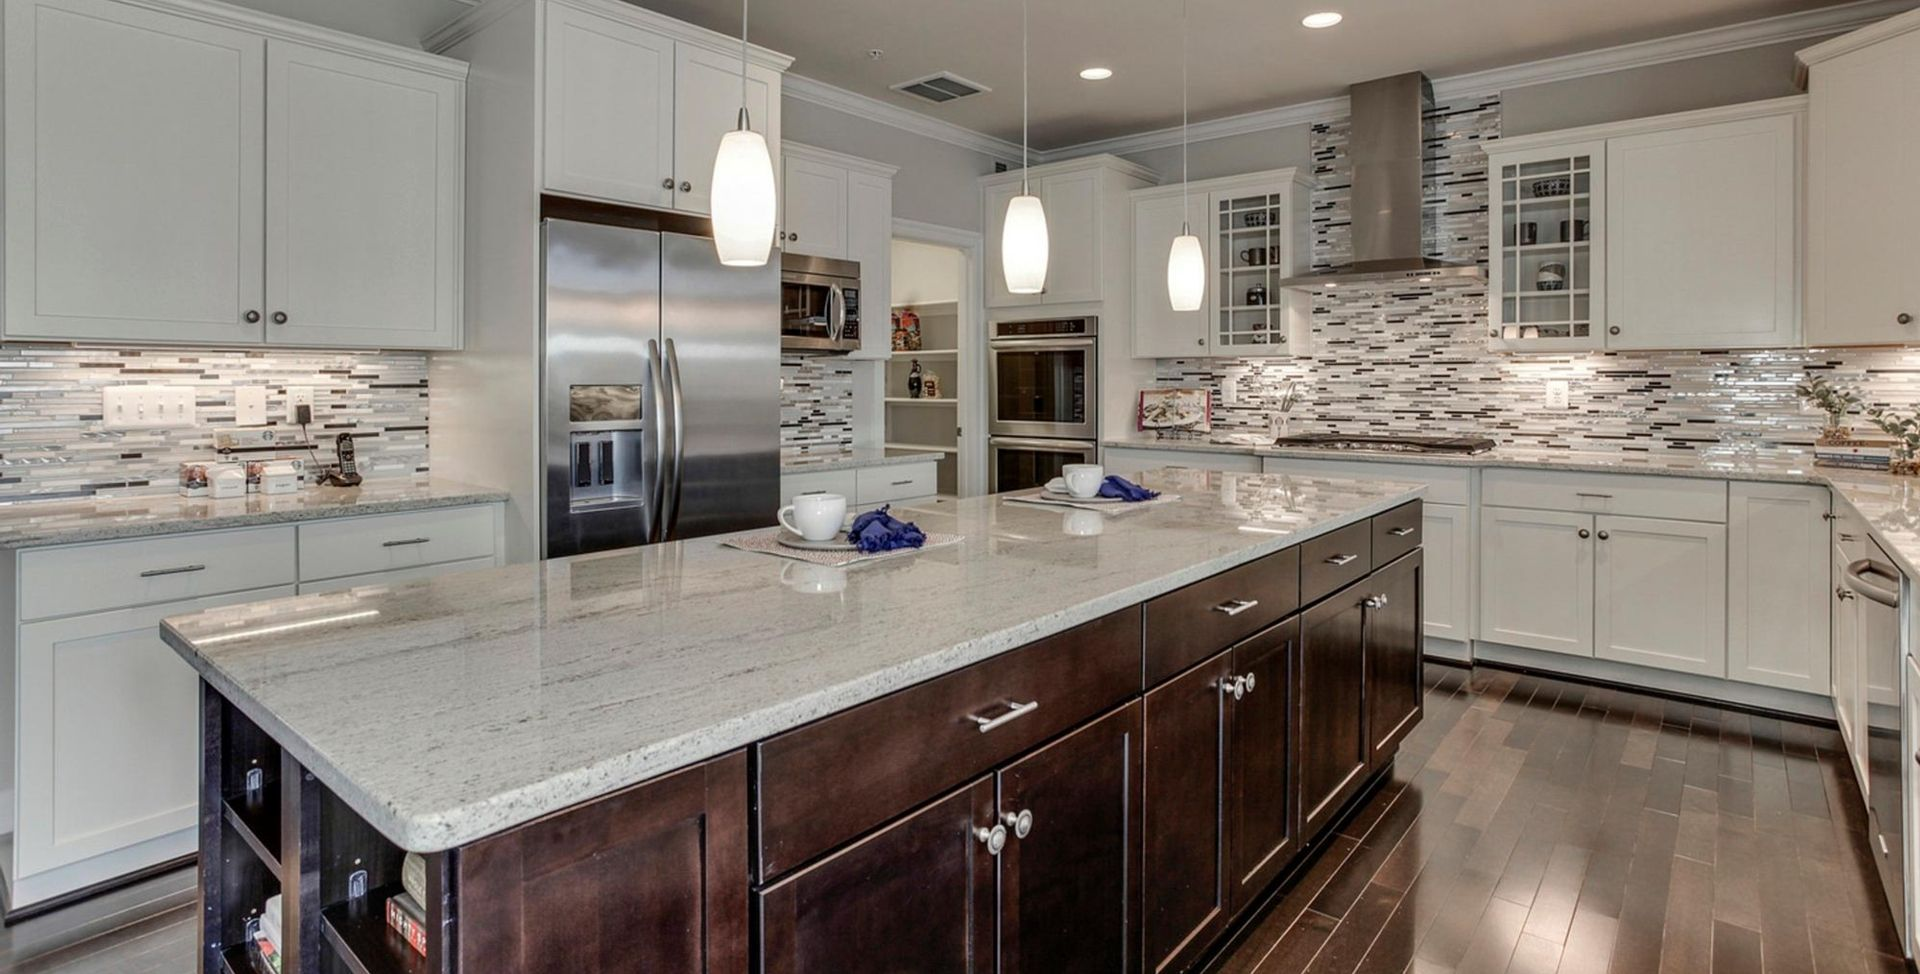 Kitchen featured in the Sorrento MG By Mid-Atlantic Builders in Washington, MD